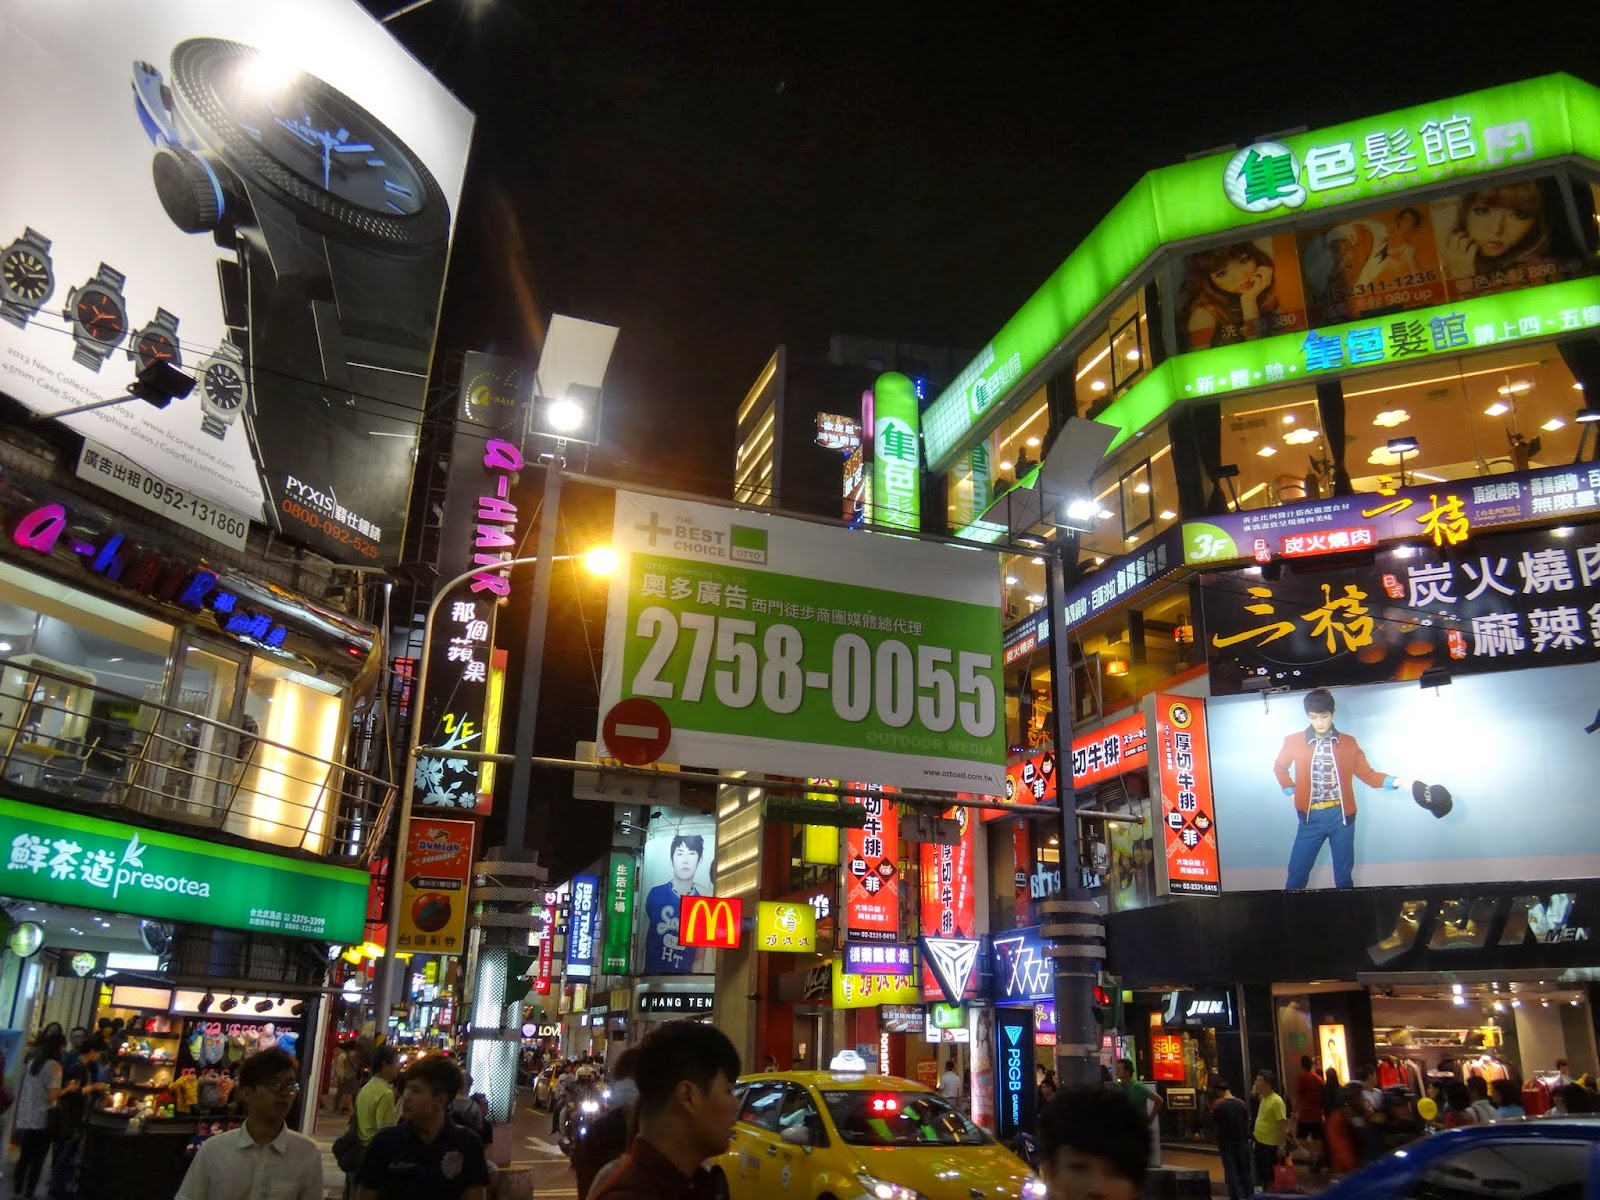 More shopping, small eateries and restaurants can be seen at Ximending streets in Taipei, Taiwan